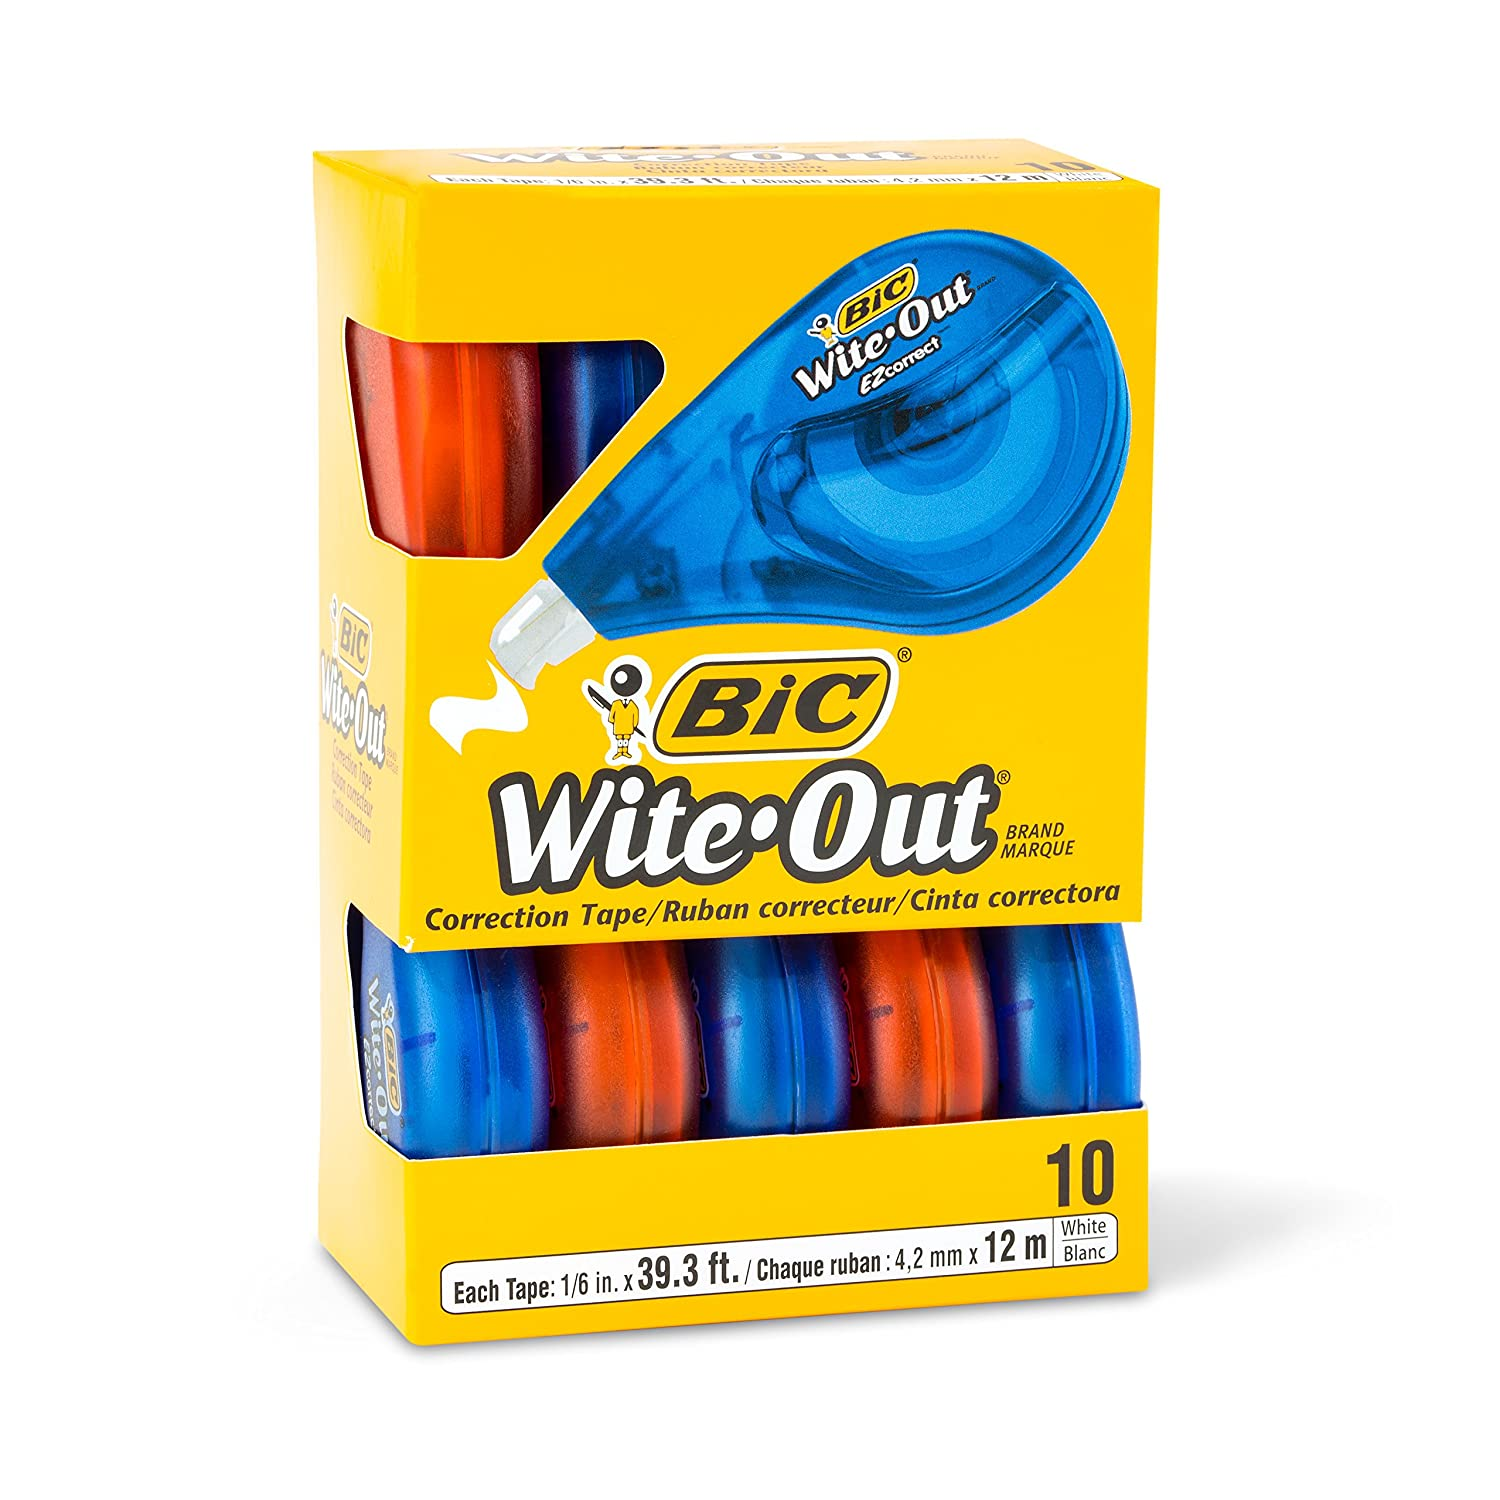 40-Count BIC Wite-Out Brand EZ Correct Correction Tape White